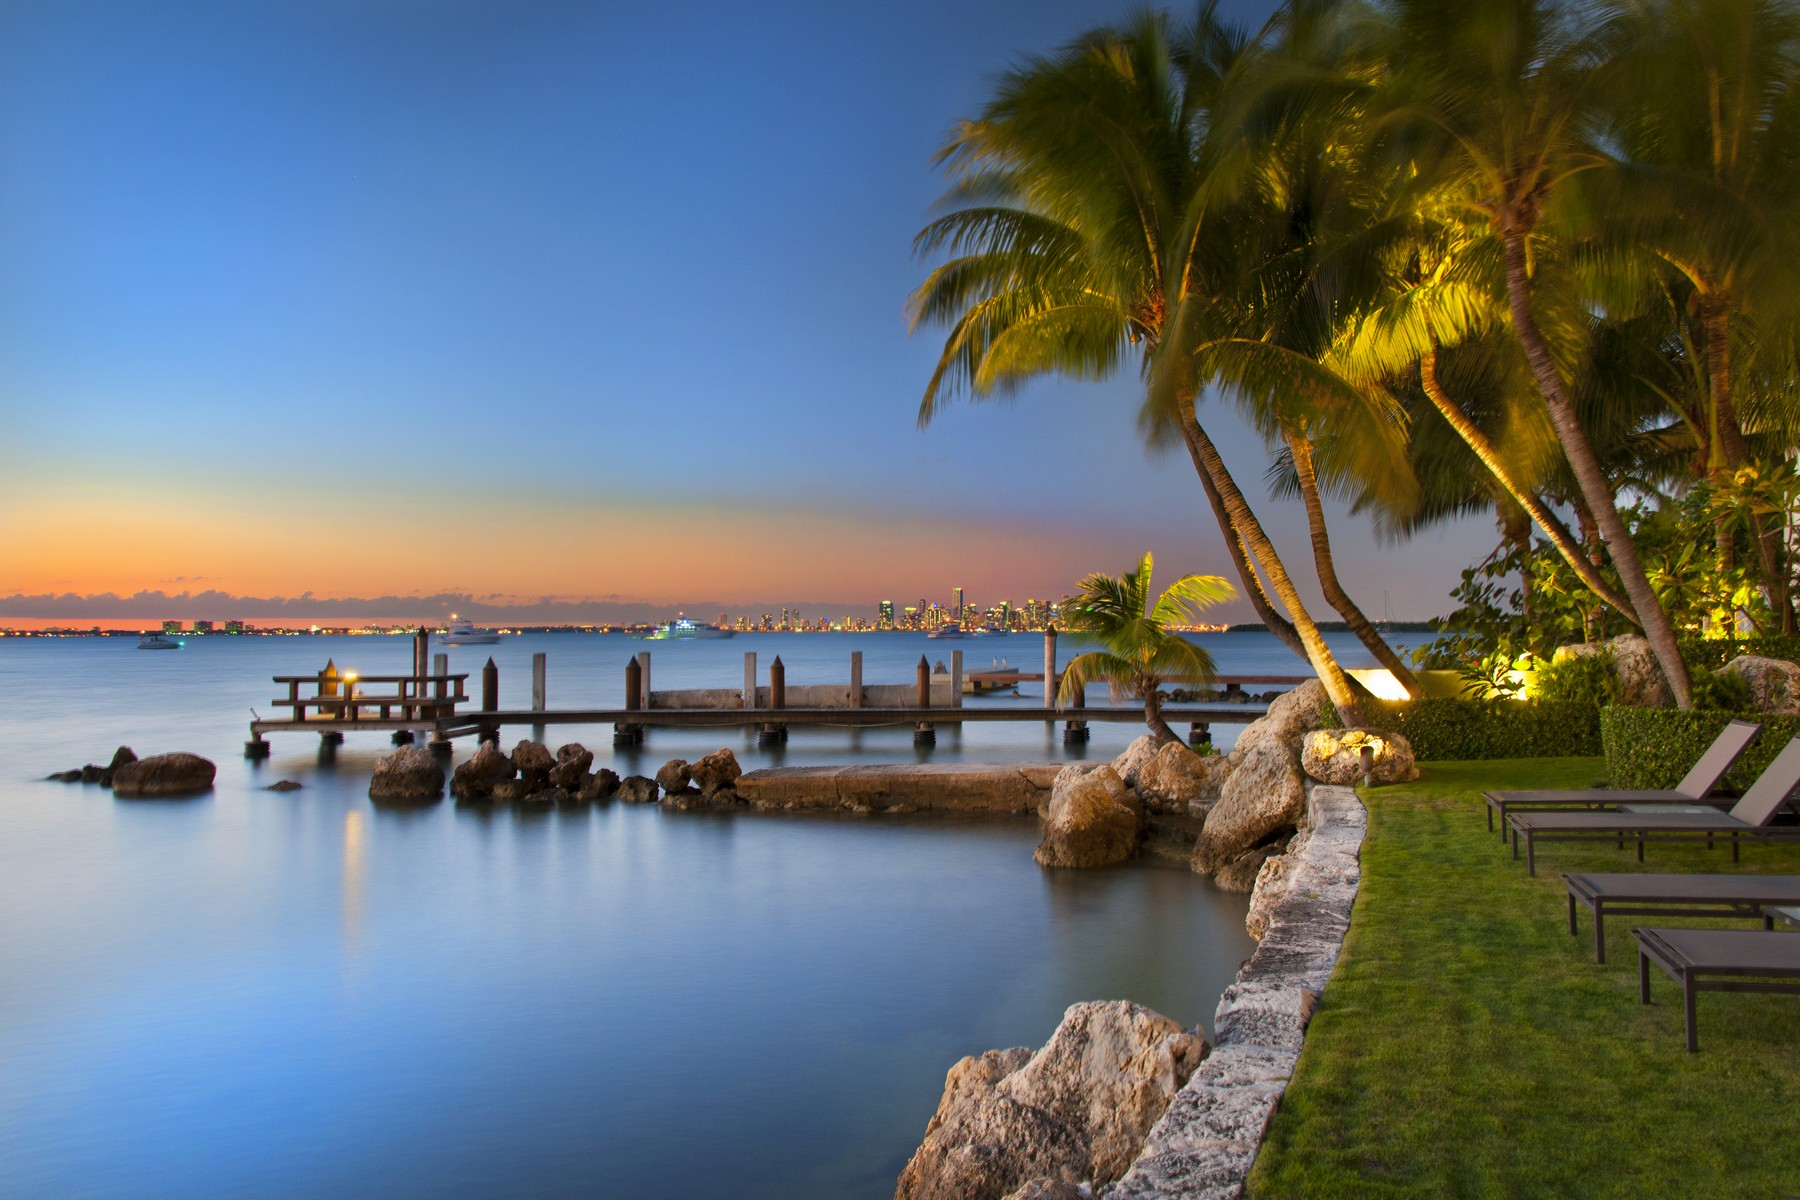 Single Family Home for Sale at Harbor Point 9Harbor Point Key Biscayne, Florida, 33149 United States